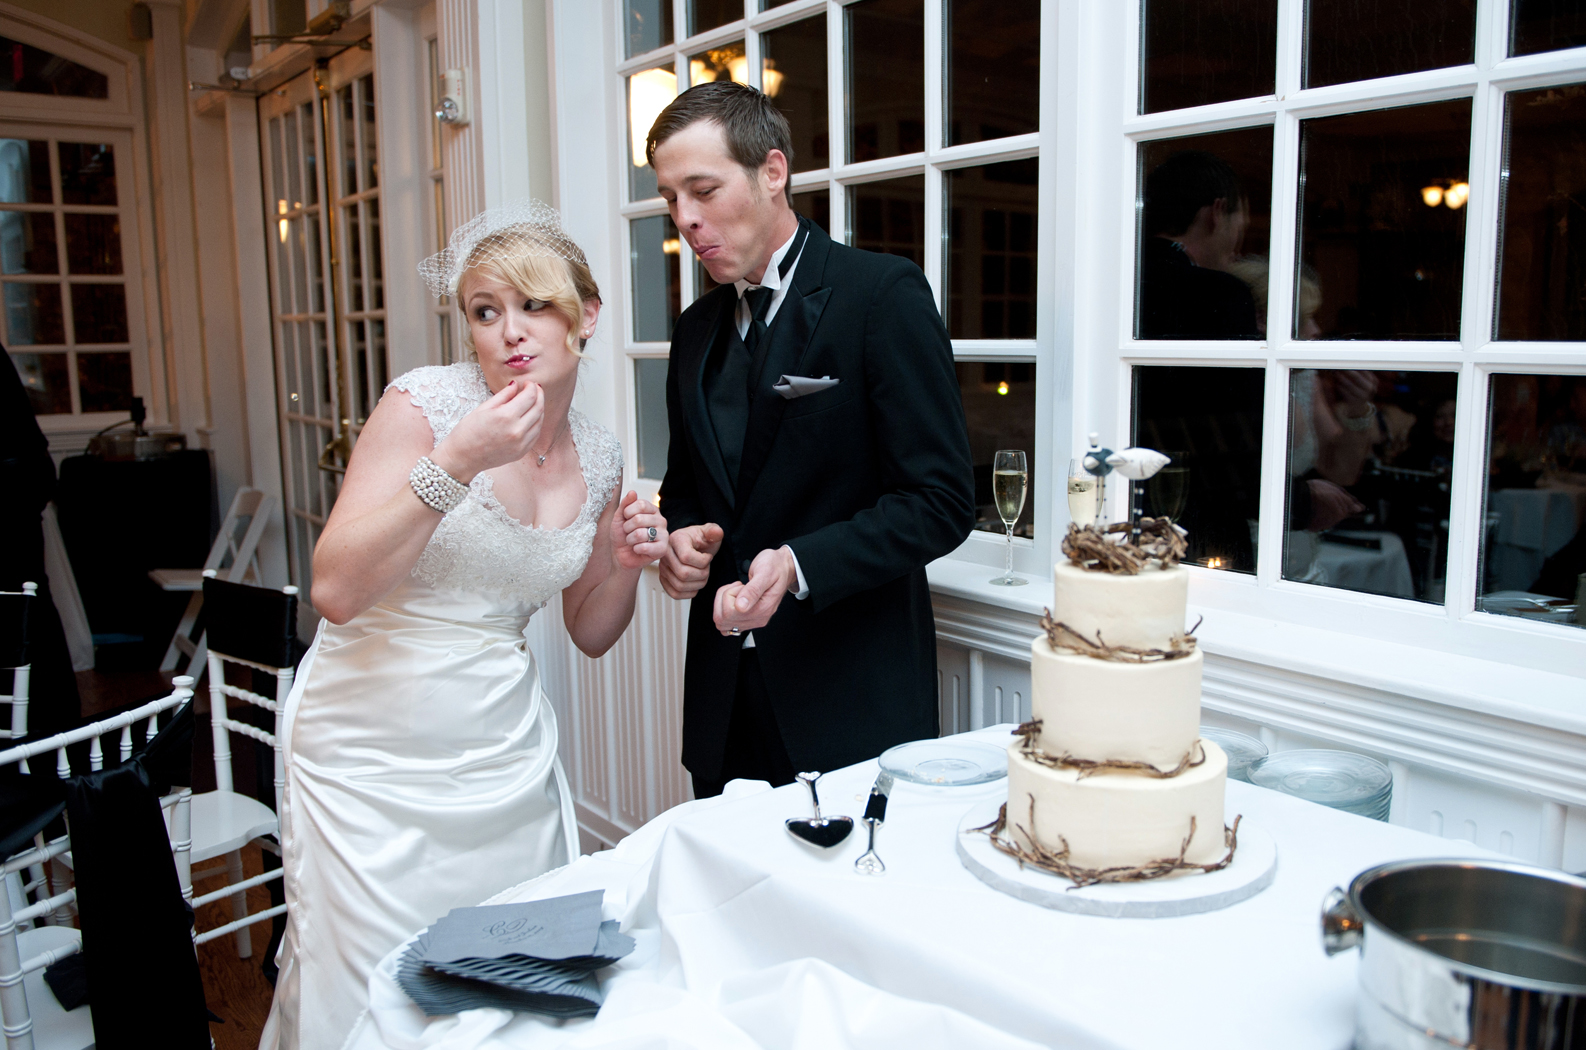 Bride and Groom sharing wedding cake